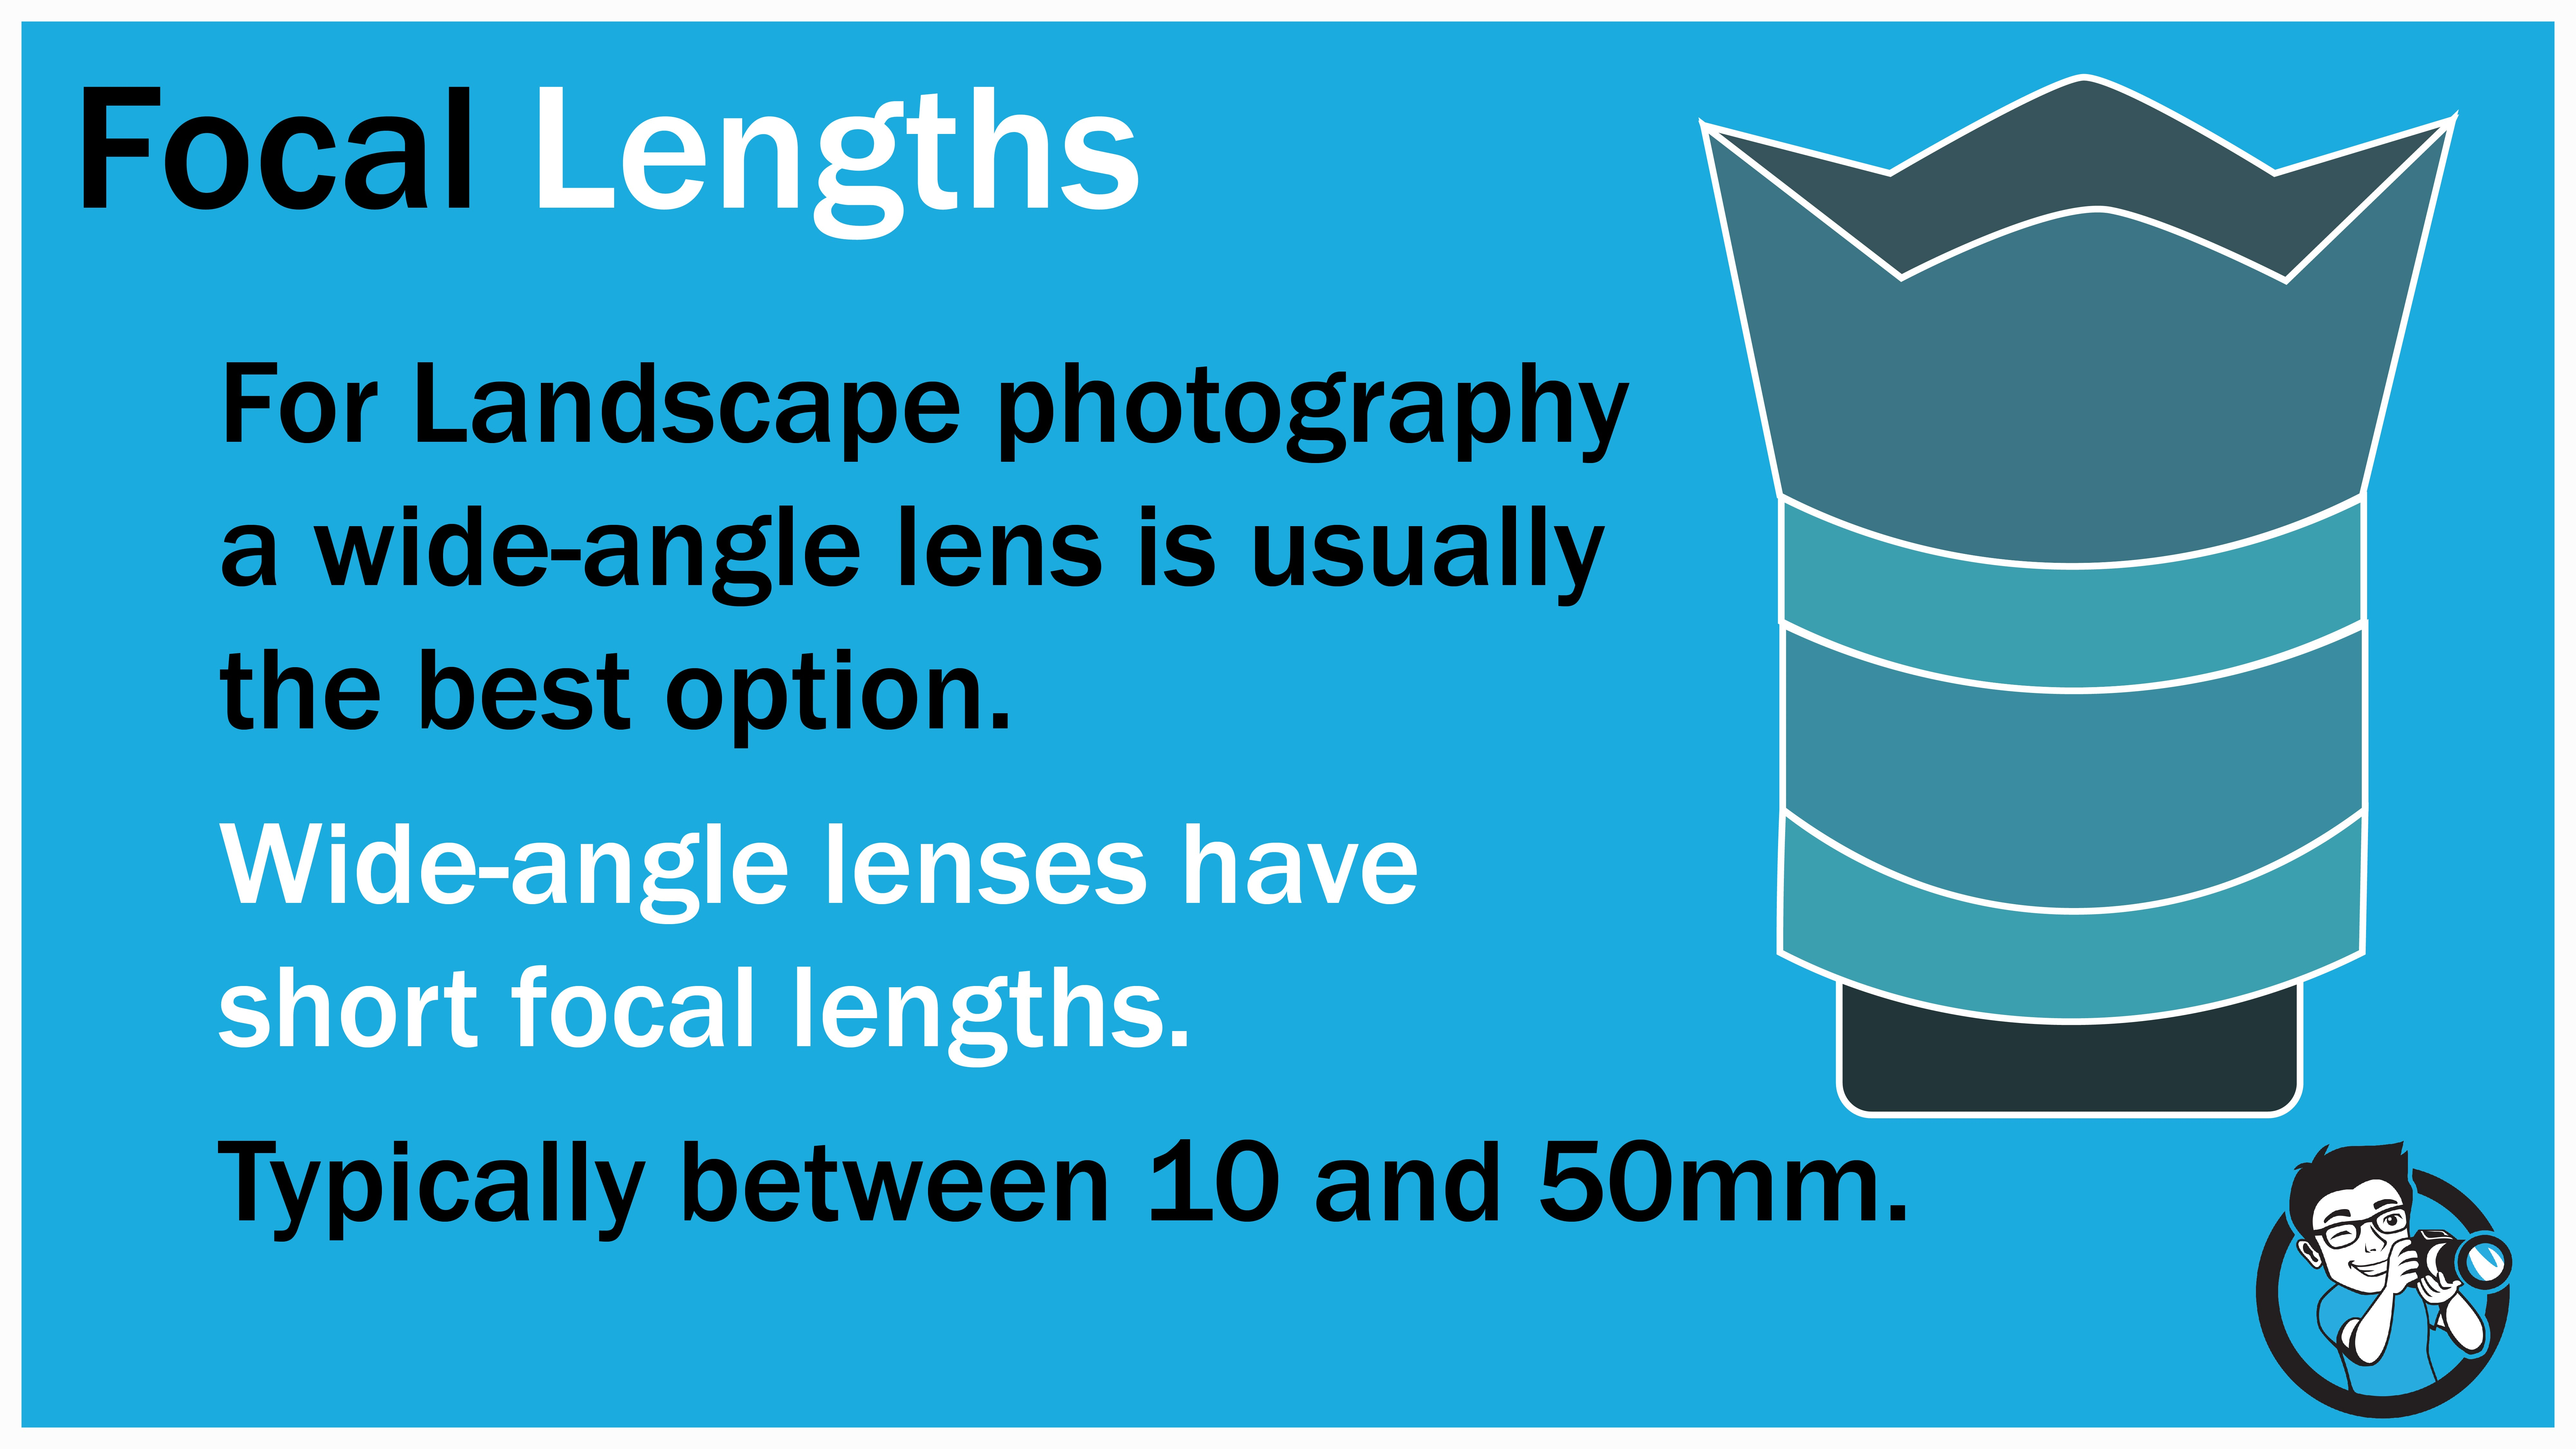 Focal length thats ideal for landscape photography